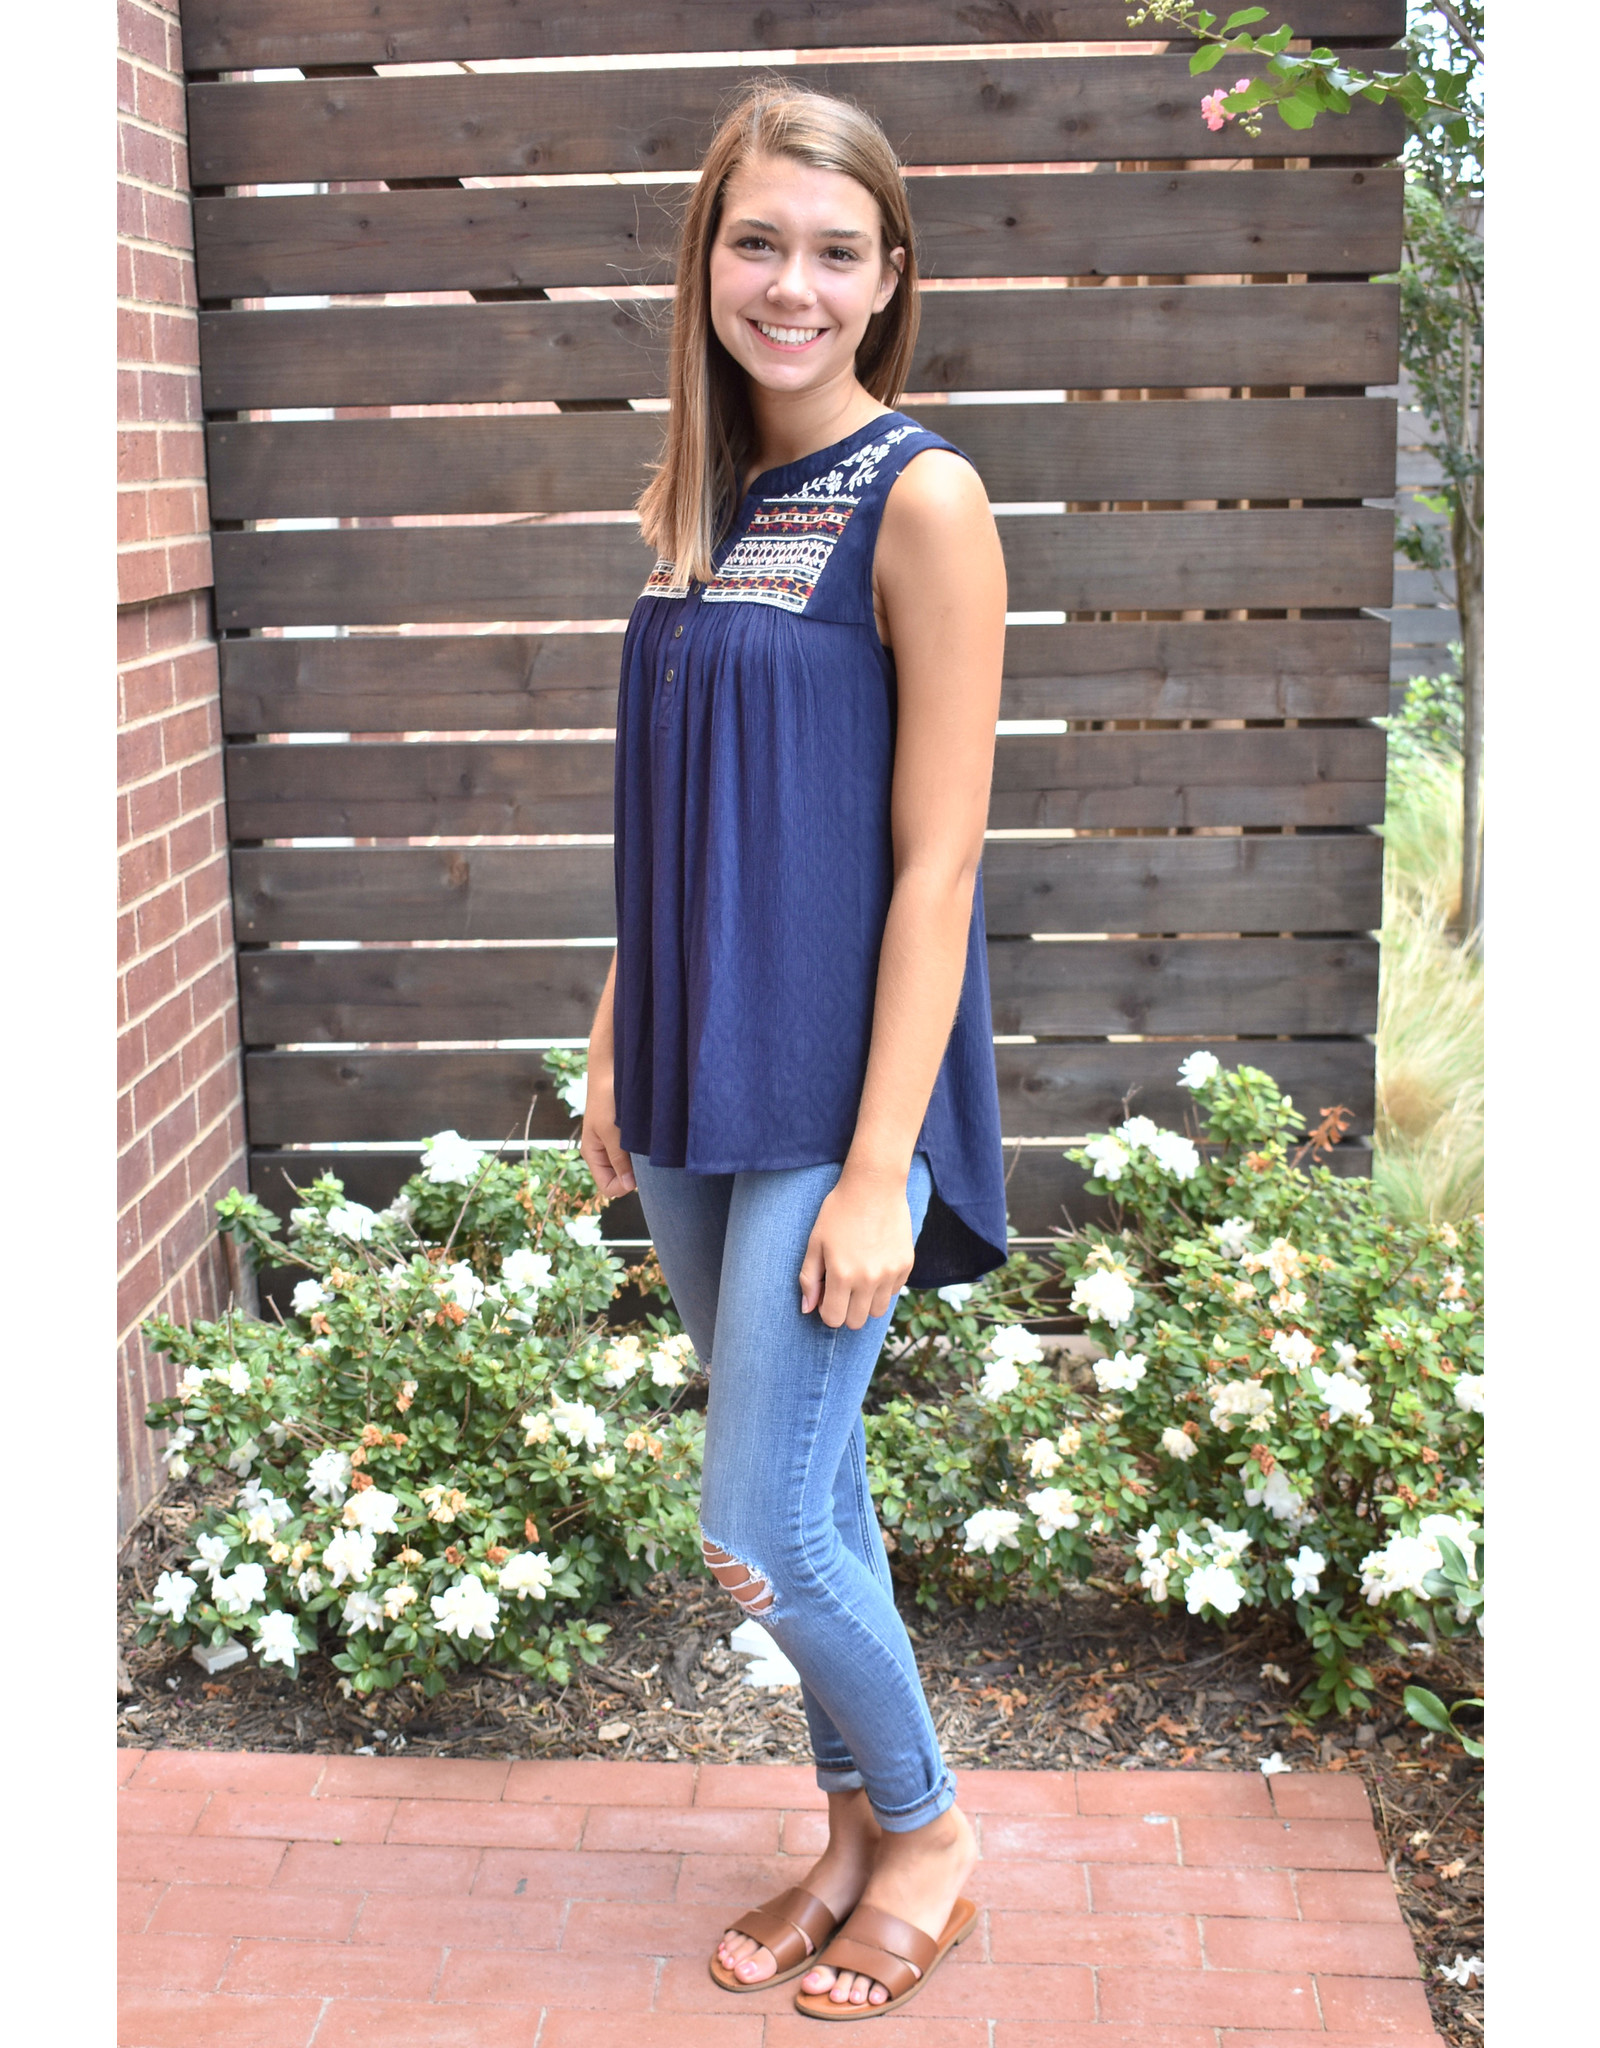 Lyla's: Clothing, Decor & More Truth Hurts Embroidered Navy Top